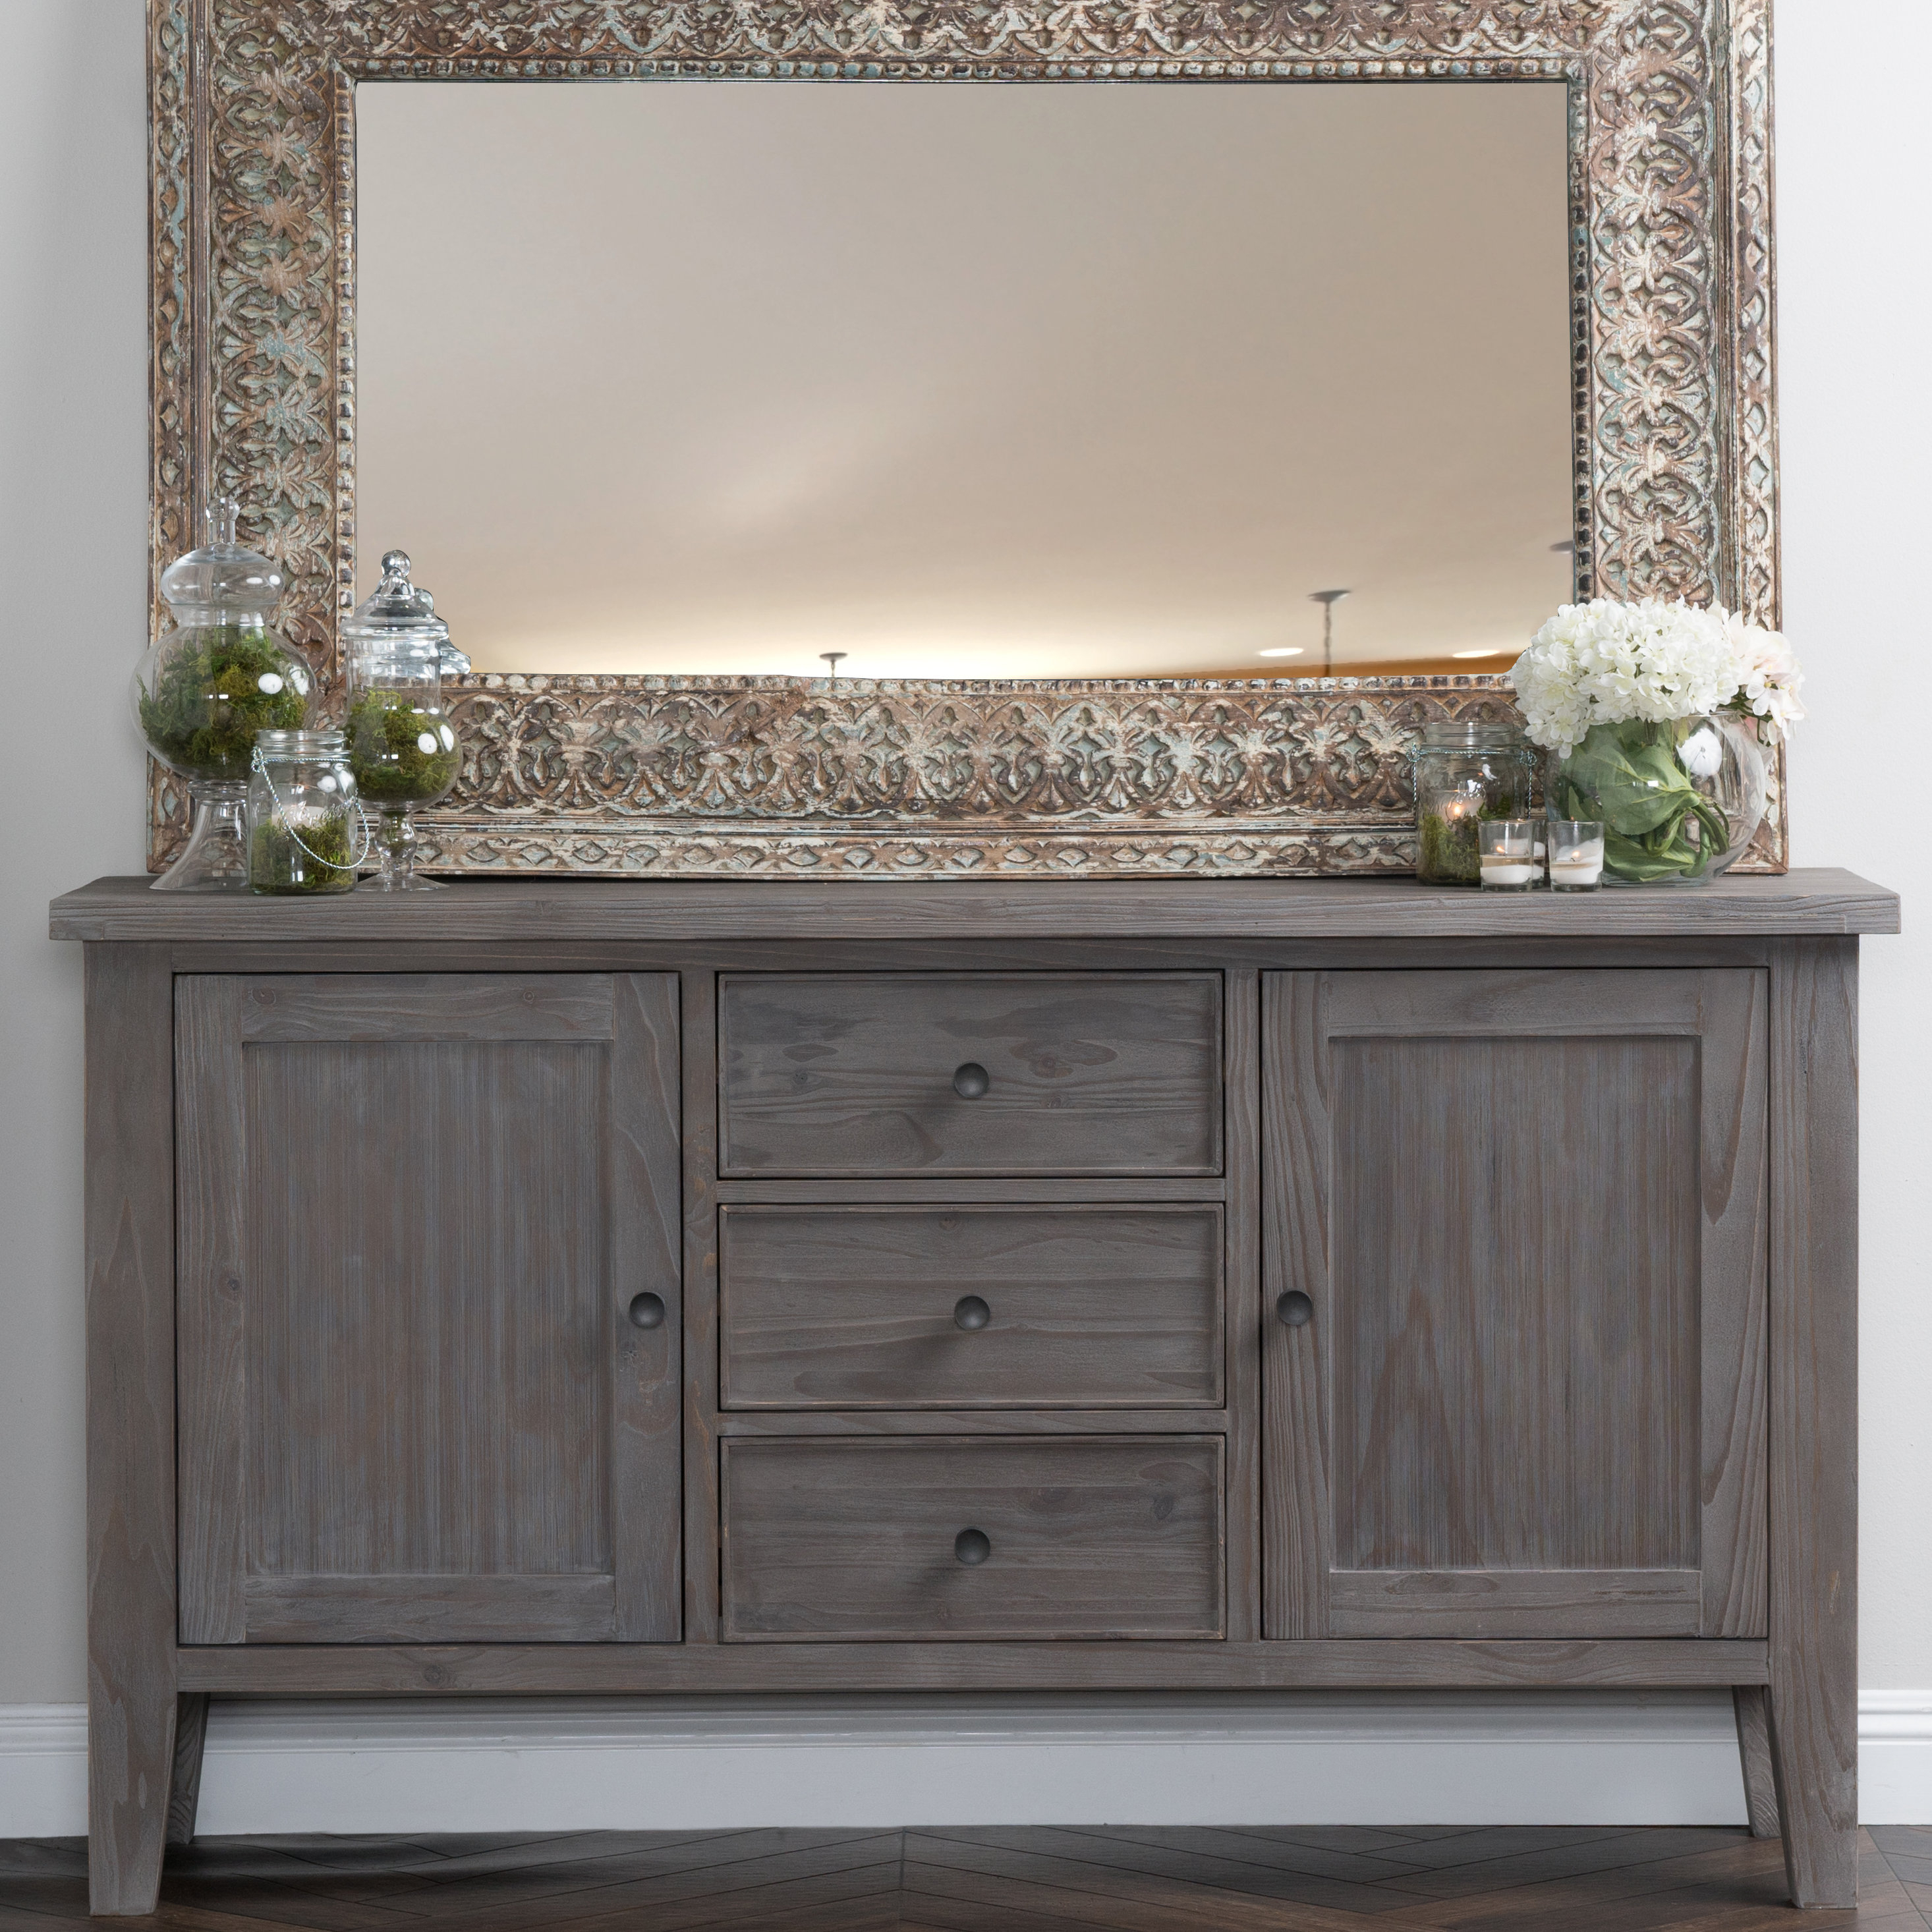 Echo Sideboard & Reviews | Joss & Main For Chicoree Charlena Sideboards (Photo 17 of 30)